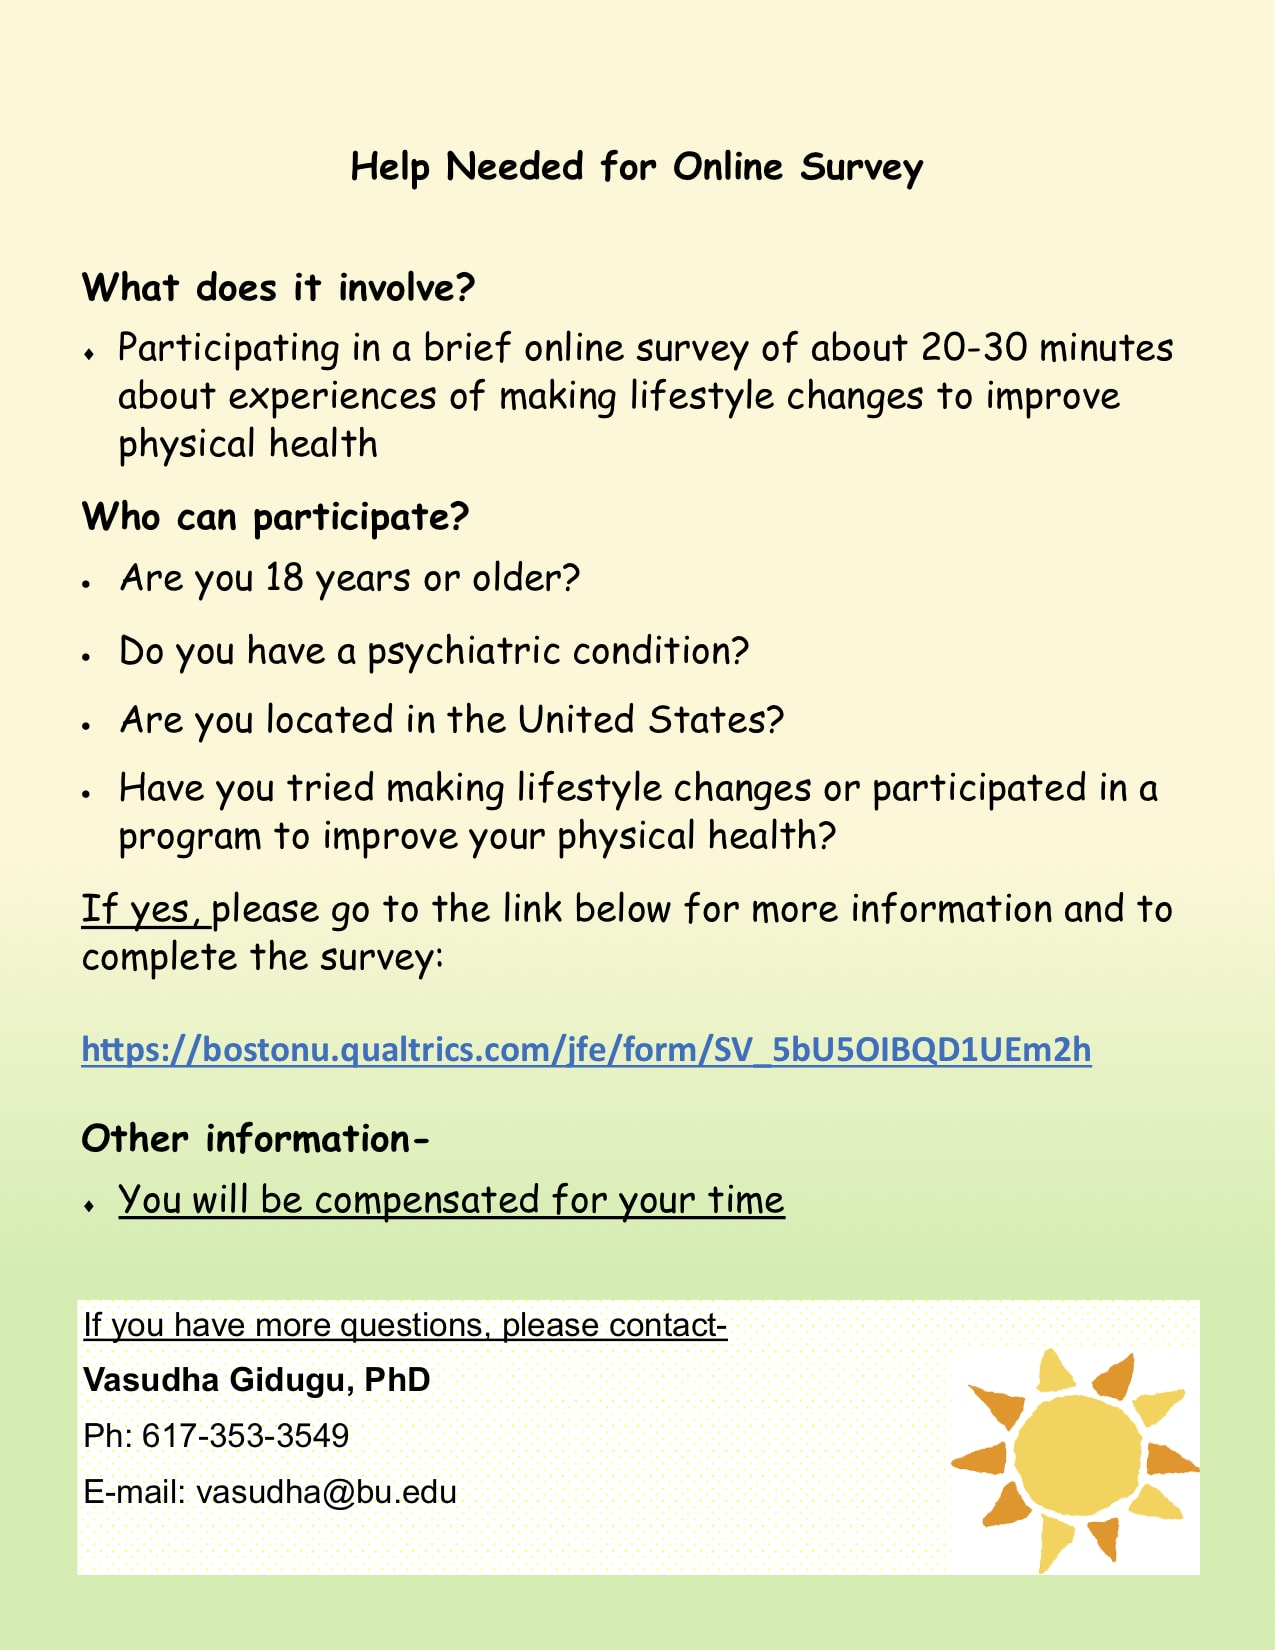 Participating in a brief online survey of about 20-30 minutes about experiences of making lifestyle changes to improve physical health. Contact vasudha@bu.edu for more information